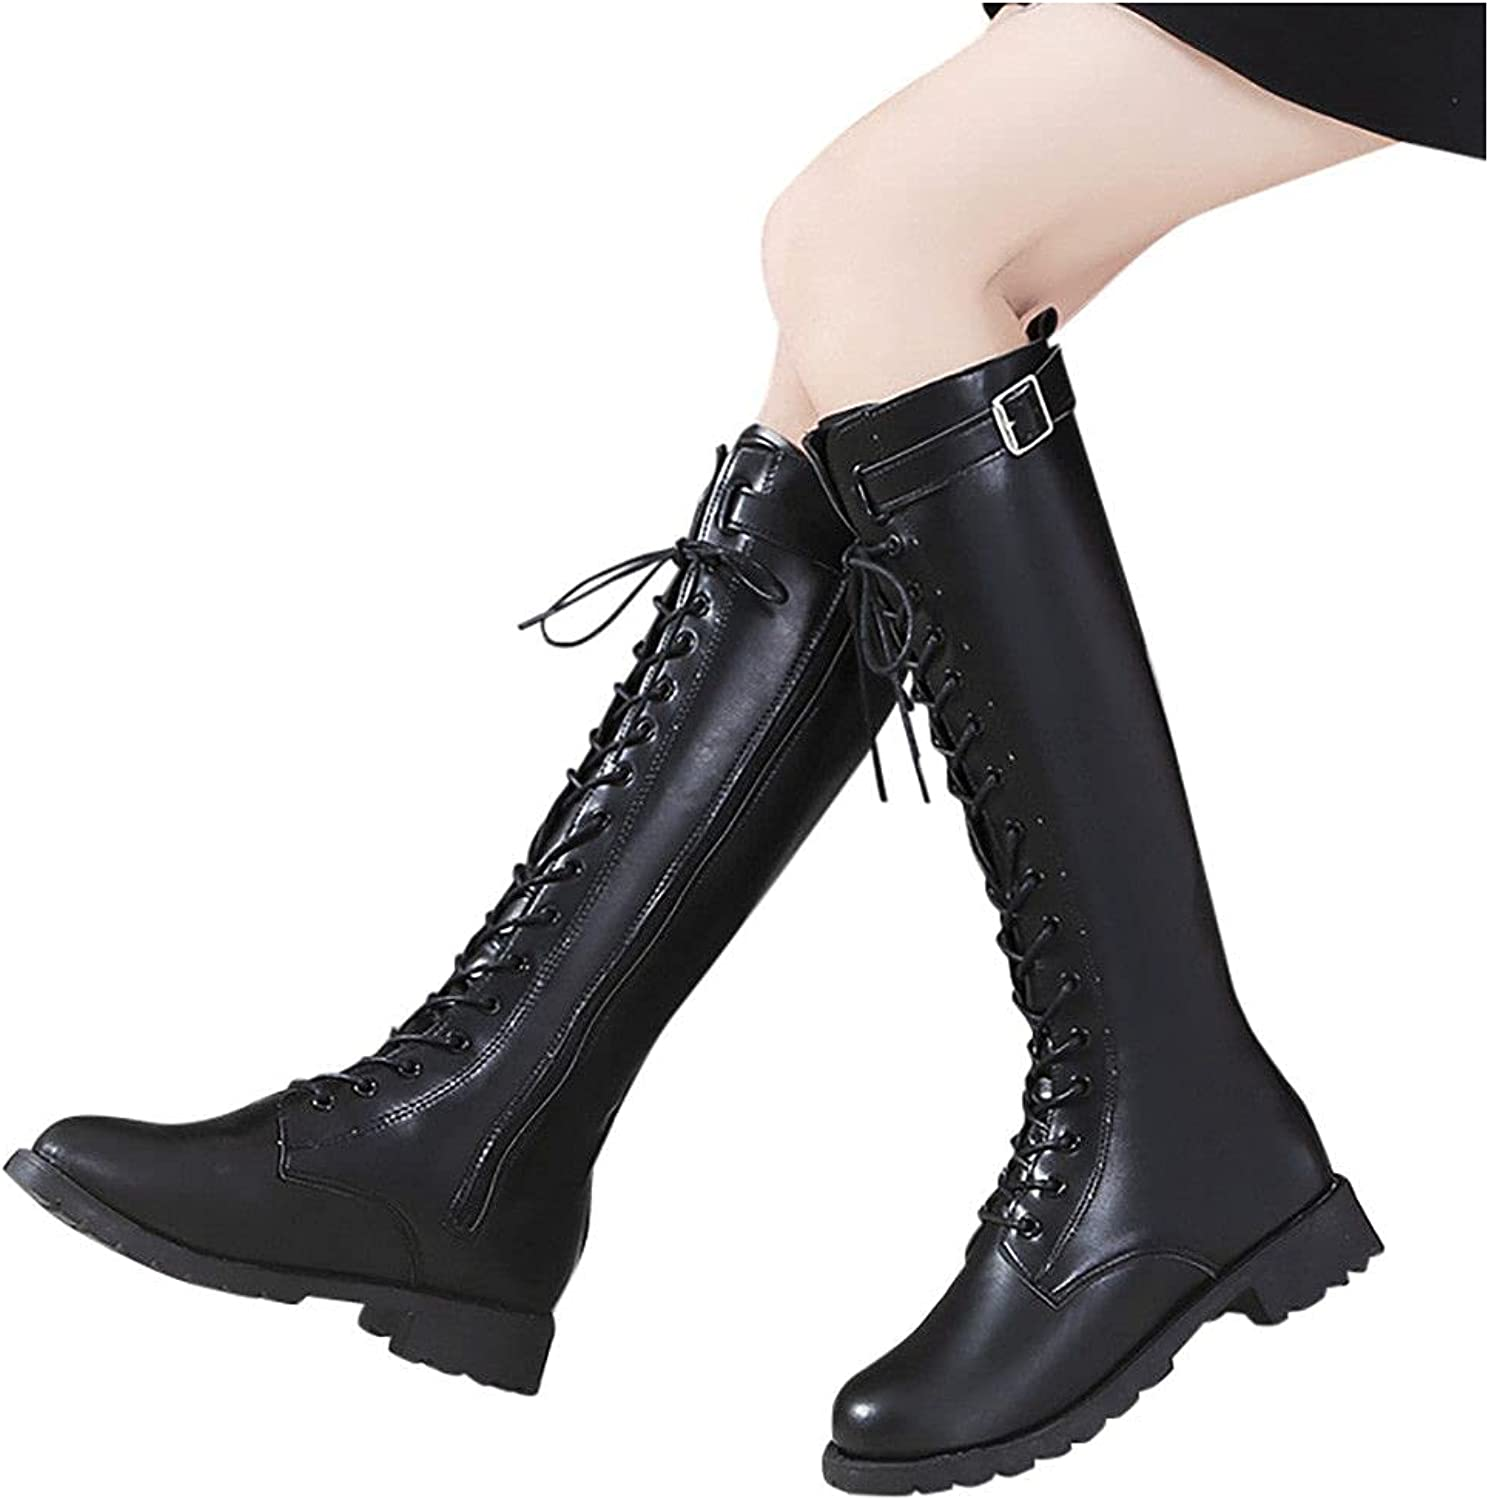 Boots for Women Fashion Winter Belt National products Buckle Hig Memphis Mall Color Pure Chunky